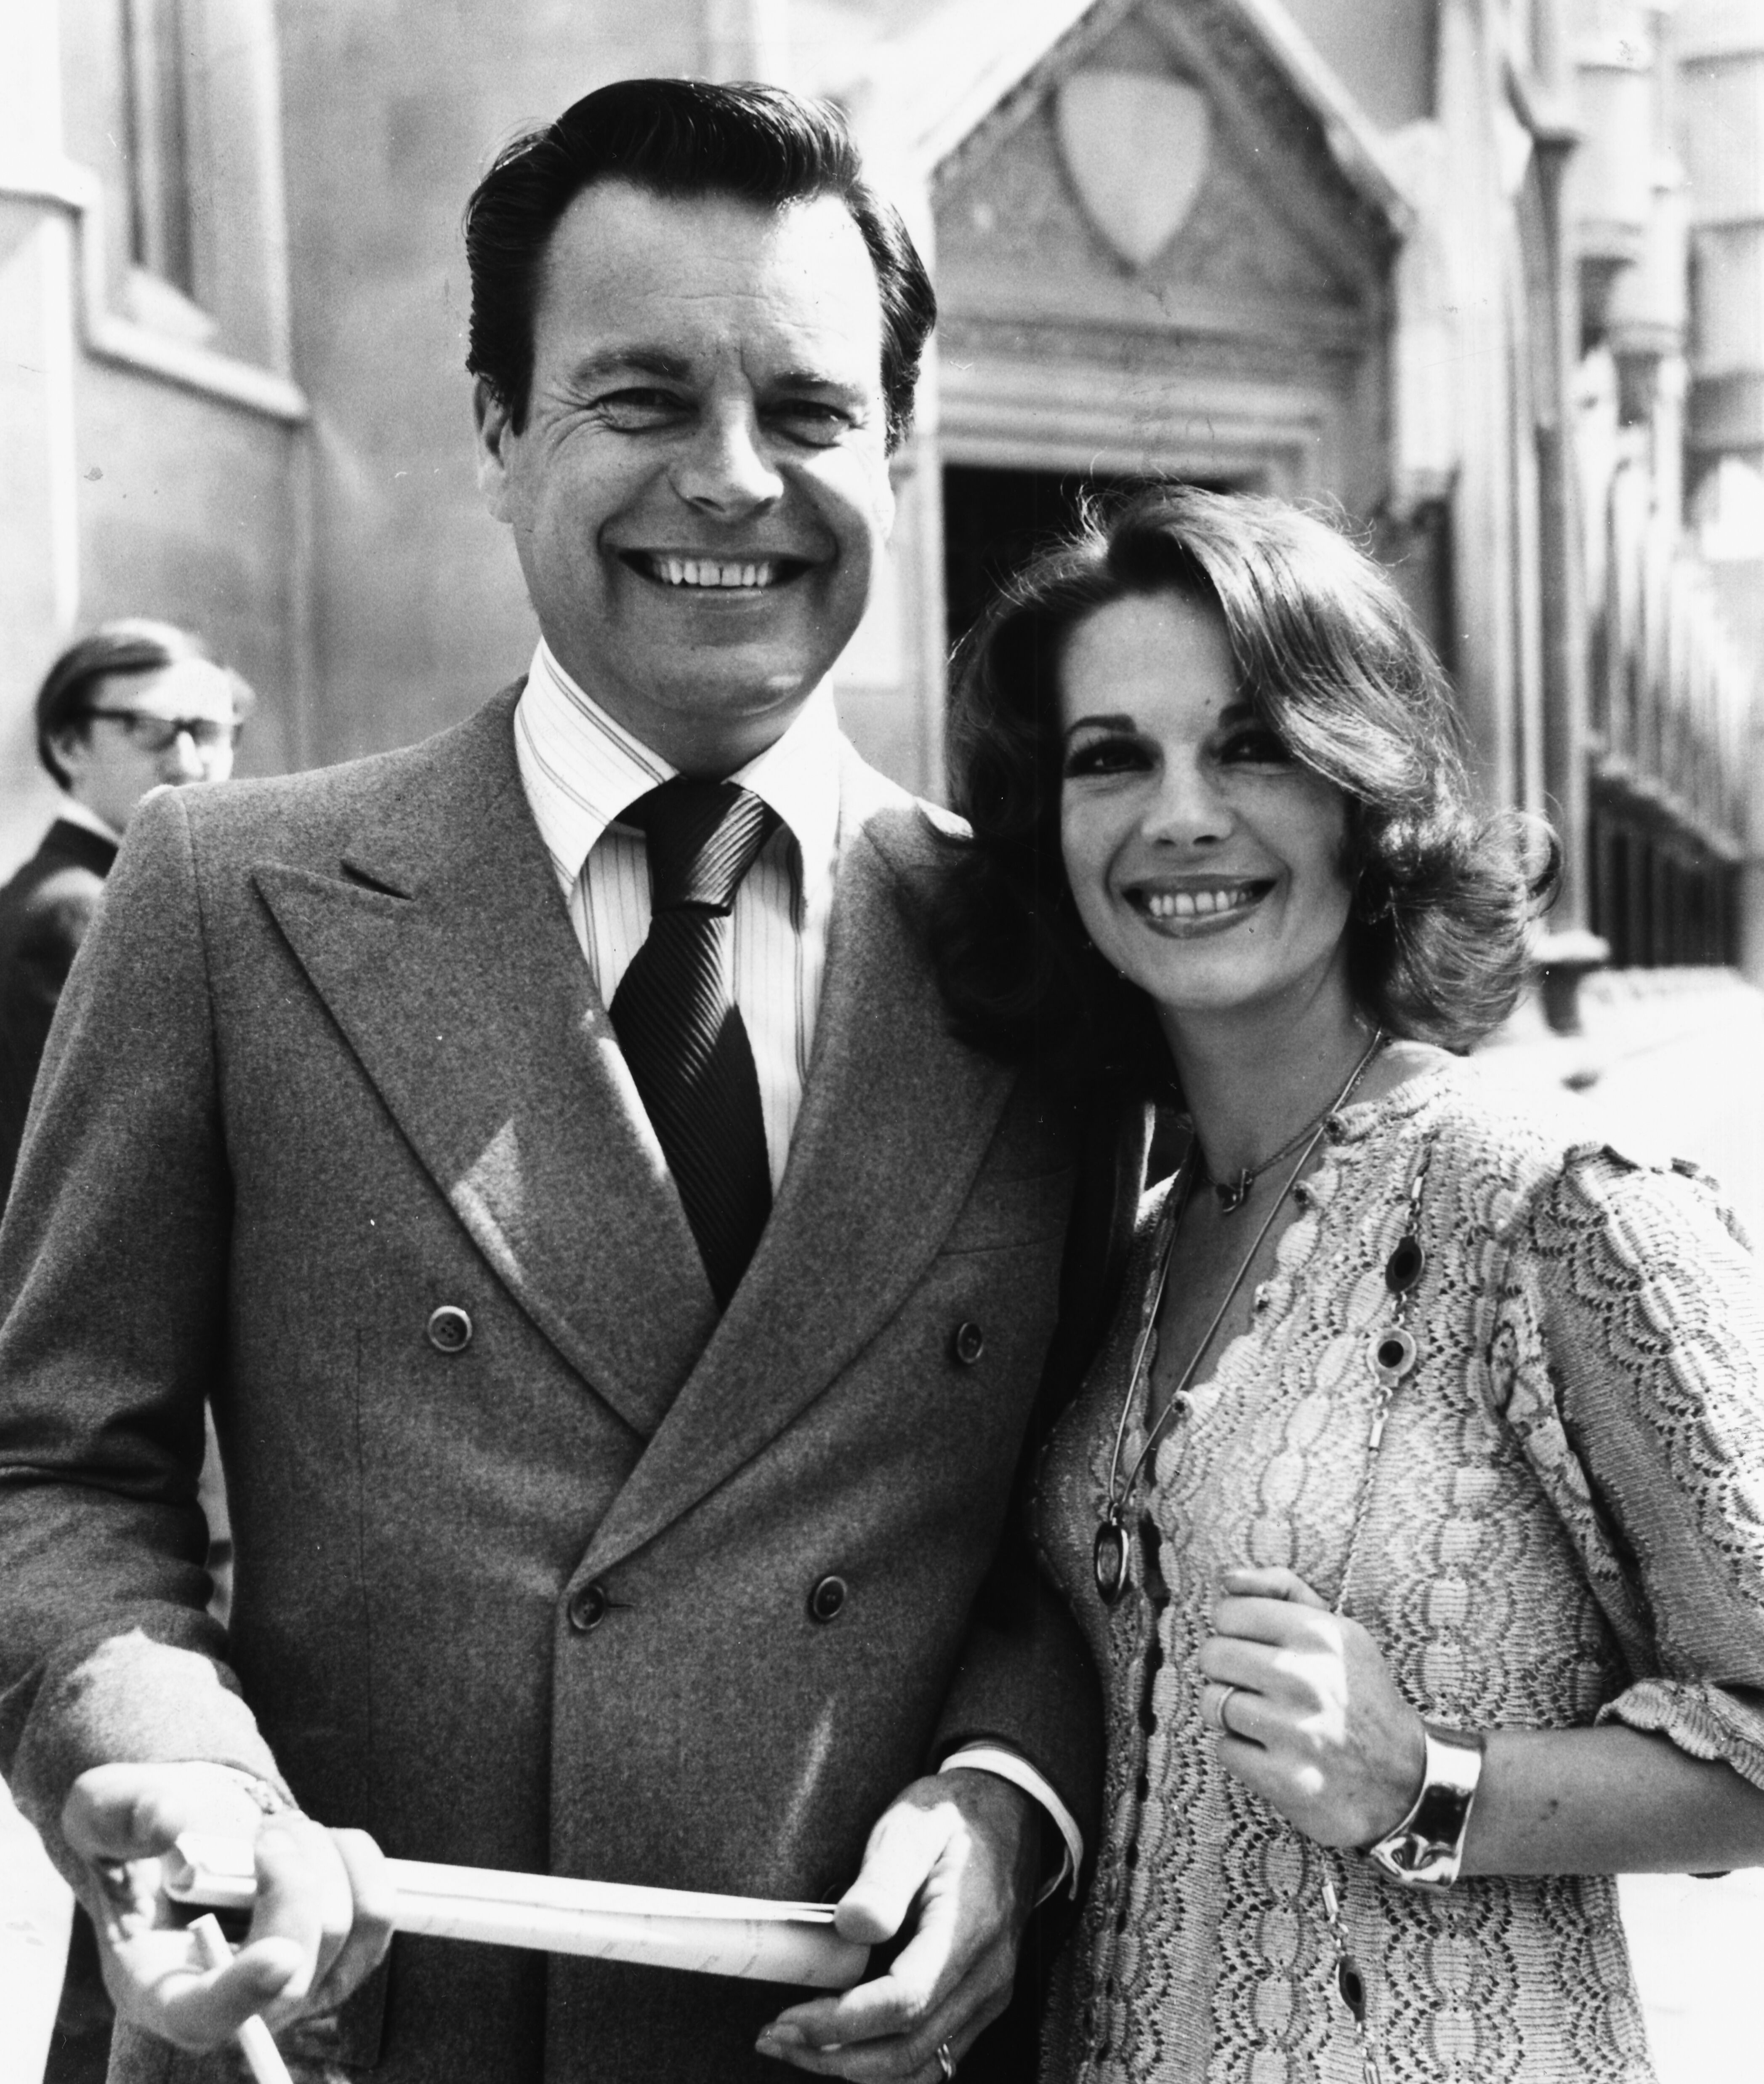 Natalie Wood and Robert Wagner in London, July 1st 1976. | Source: Getty Images